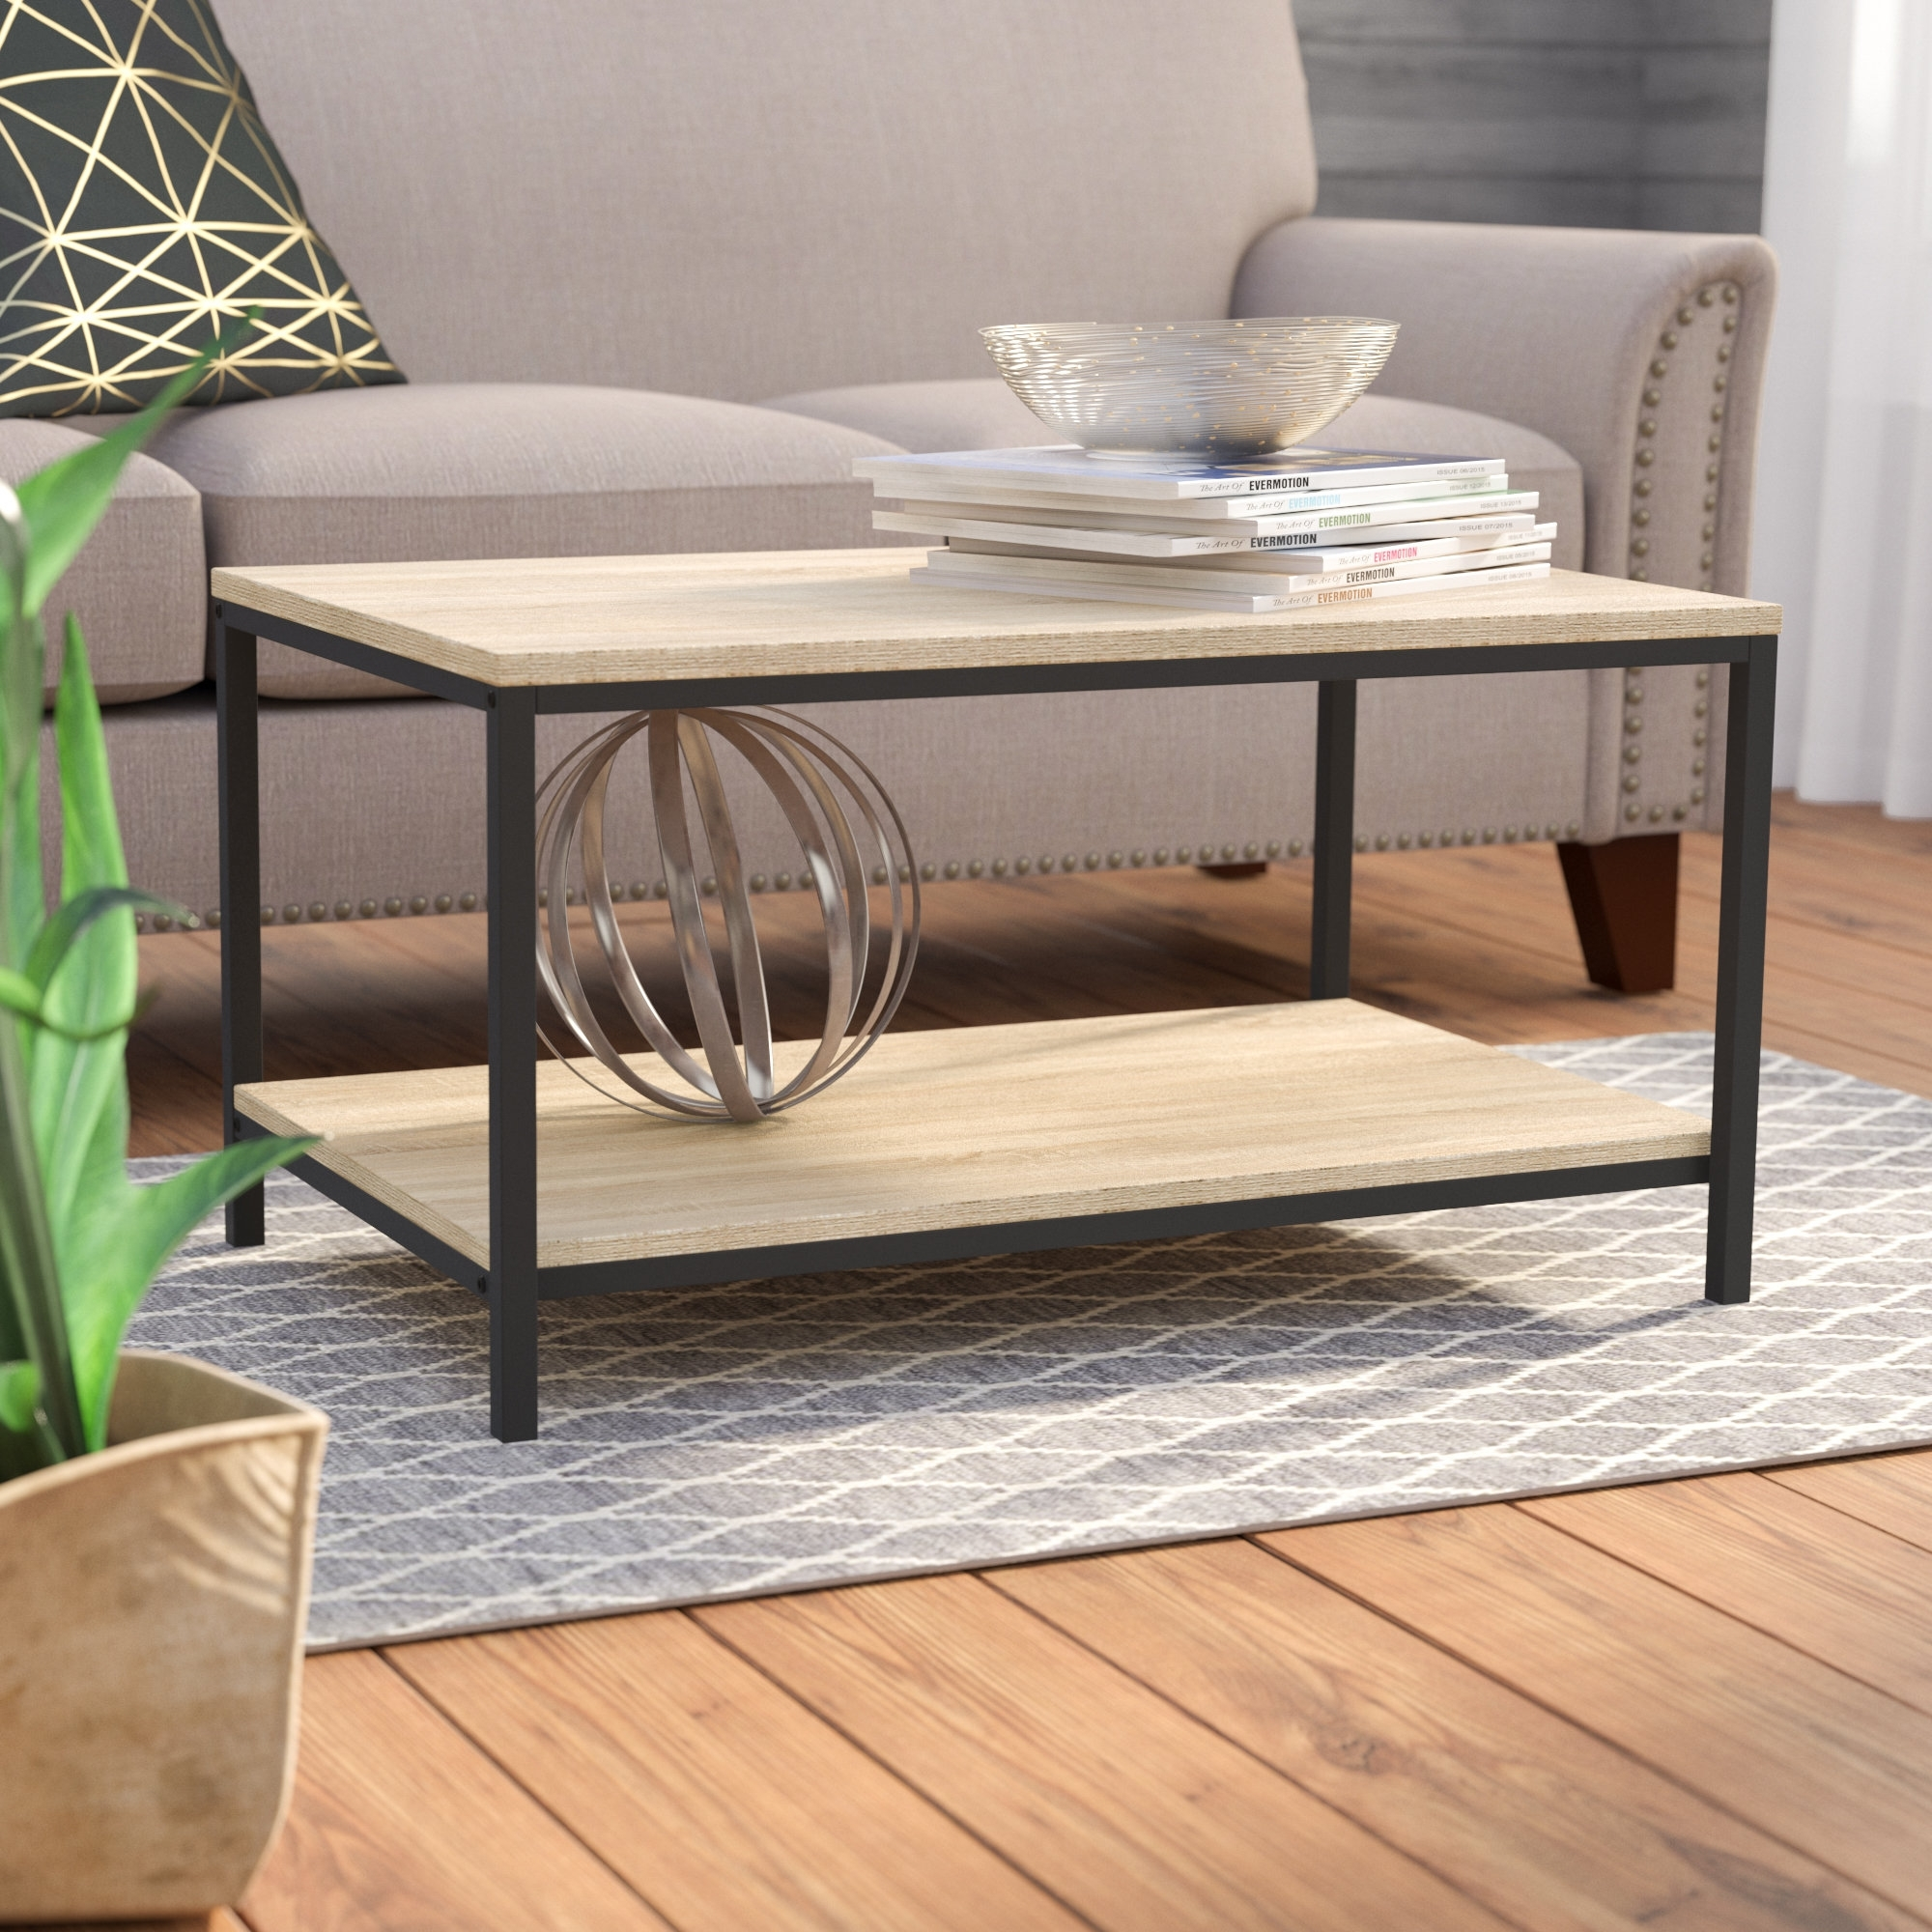 Laurel Foundry Modern Farmhouse Ermont Coffee Table & Reviews | Wayfair with Large-Scale Chinese Farmhouse Coffee Tables (Image 17 of 30)